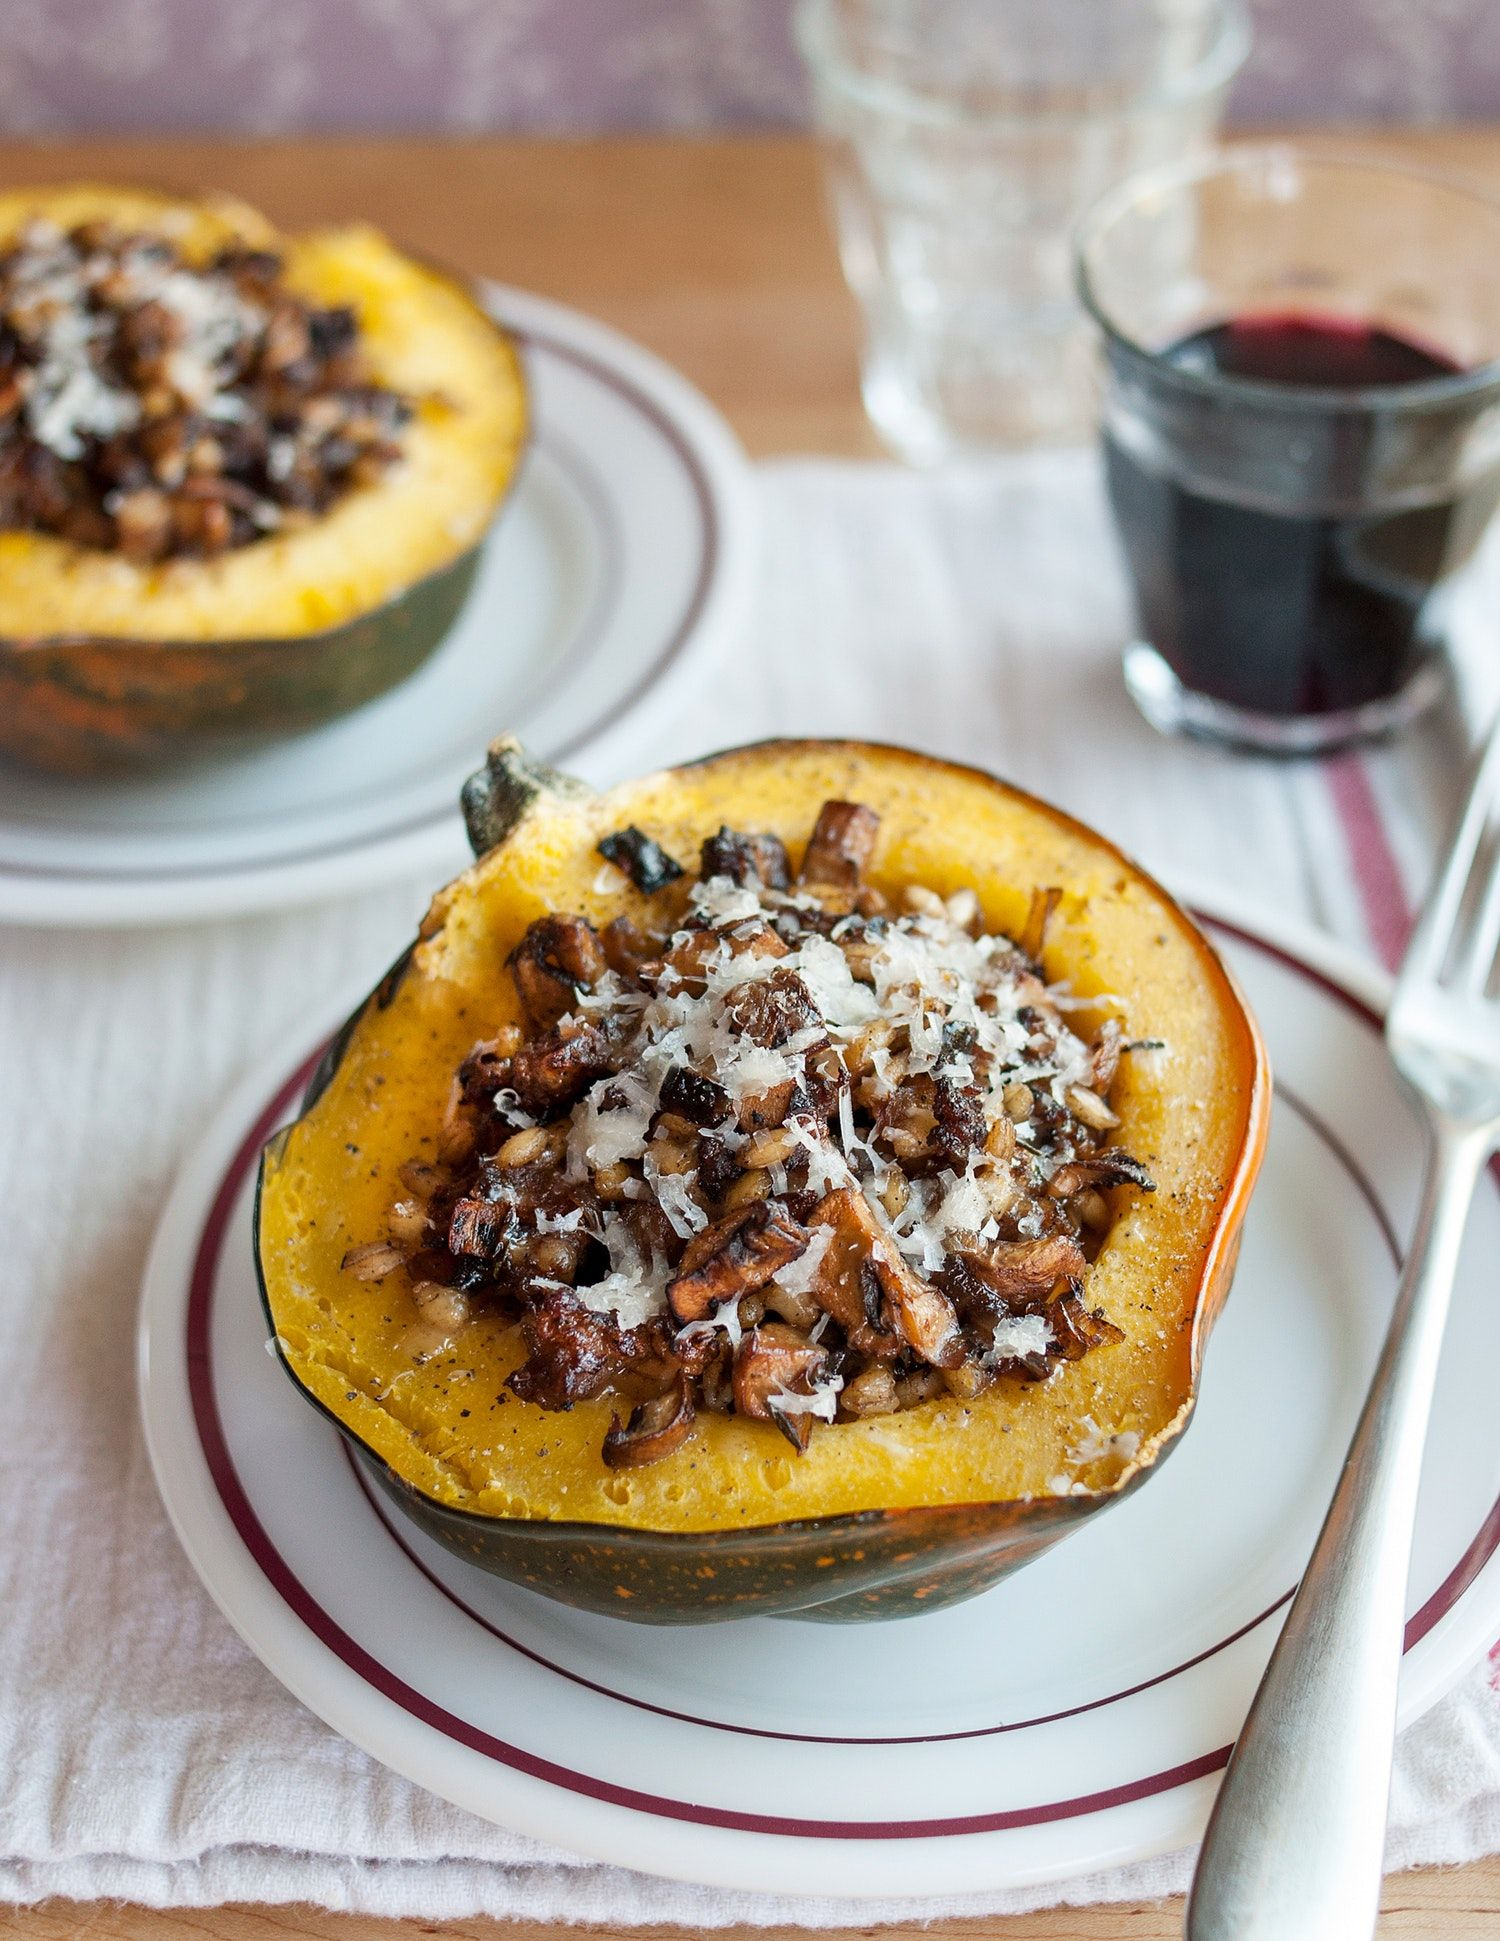 How To Make Stuffed Roasted Squash Recipe Food Recipes